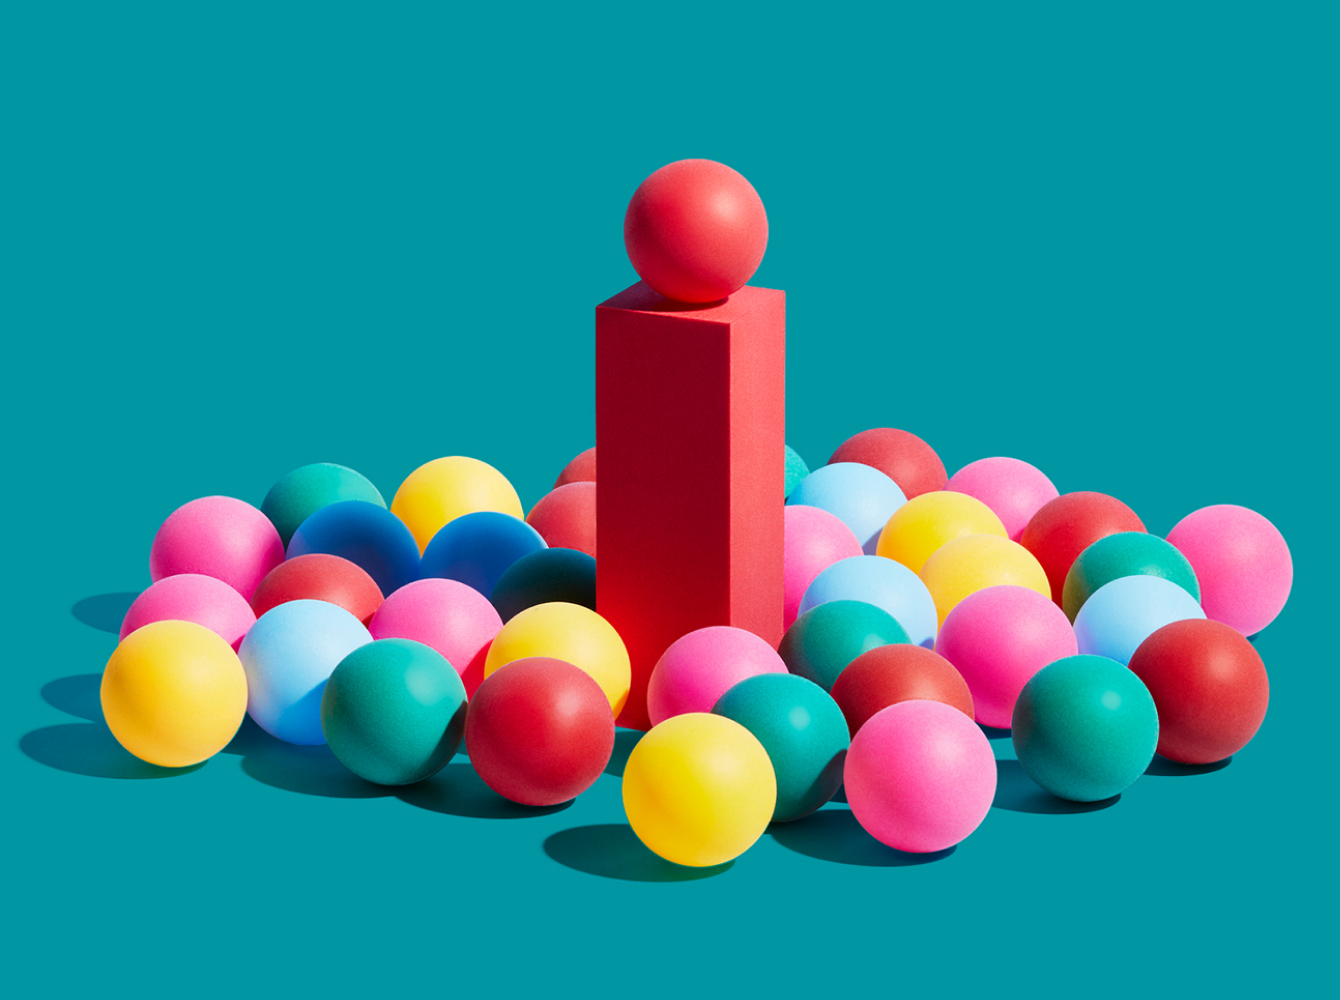 Colorful balls gathered together with one on podium